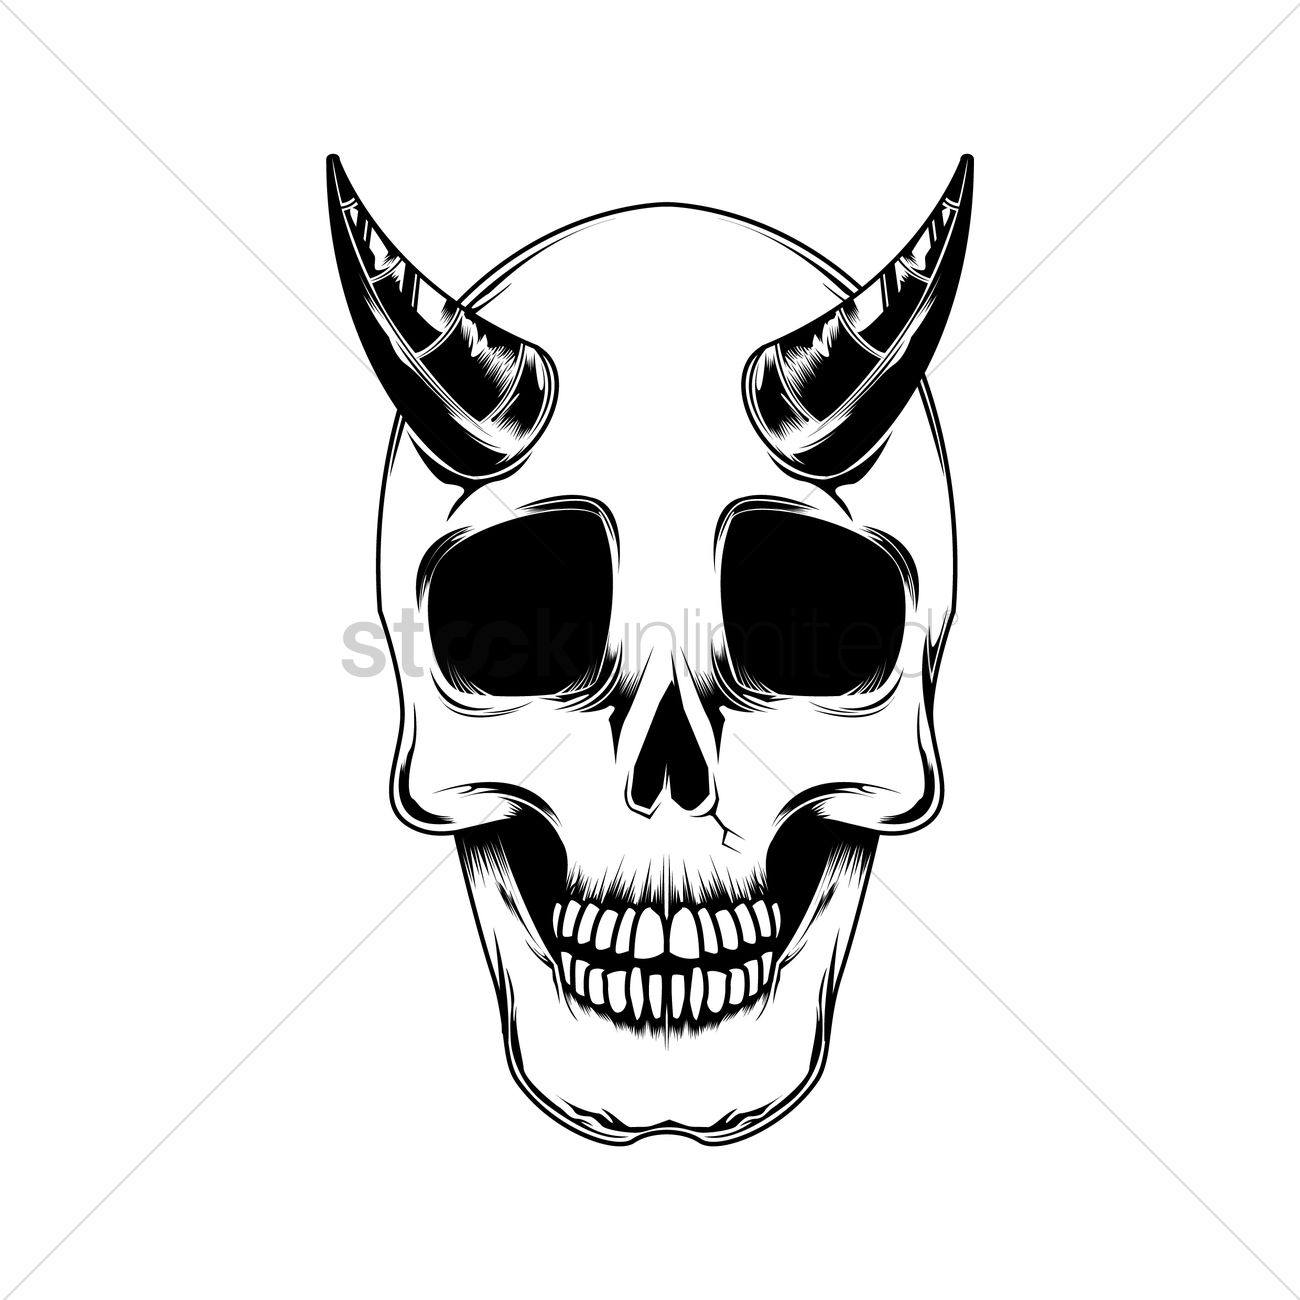 1300x1300 Skull With Horns Vector Image